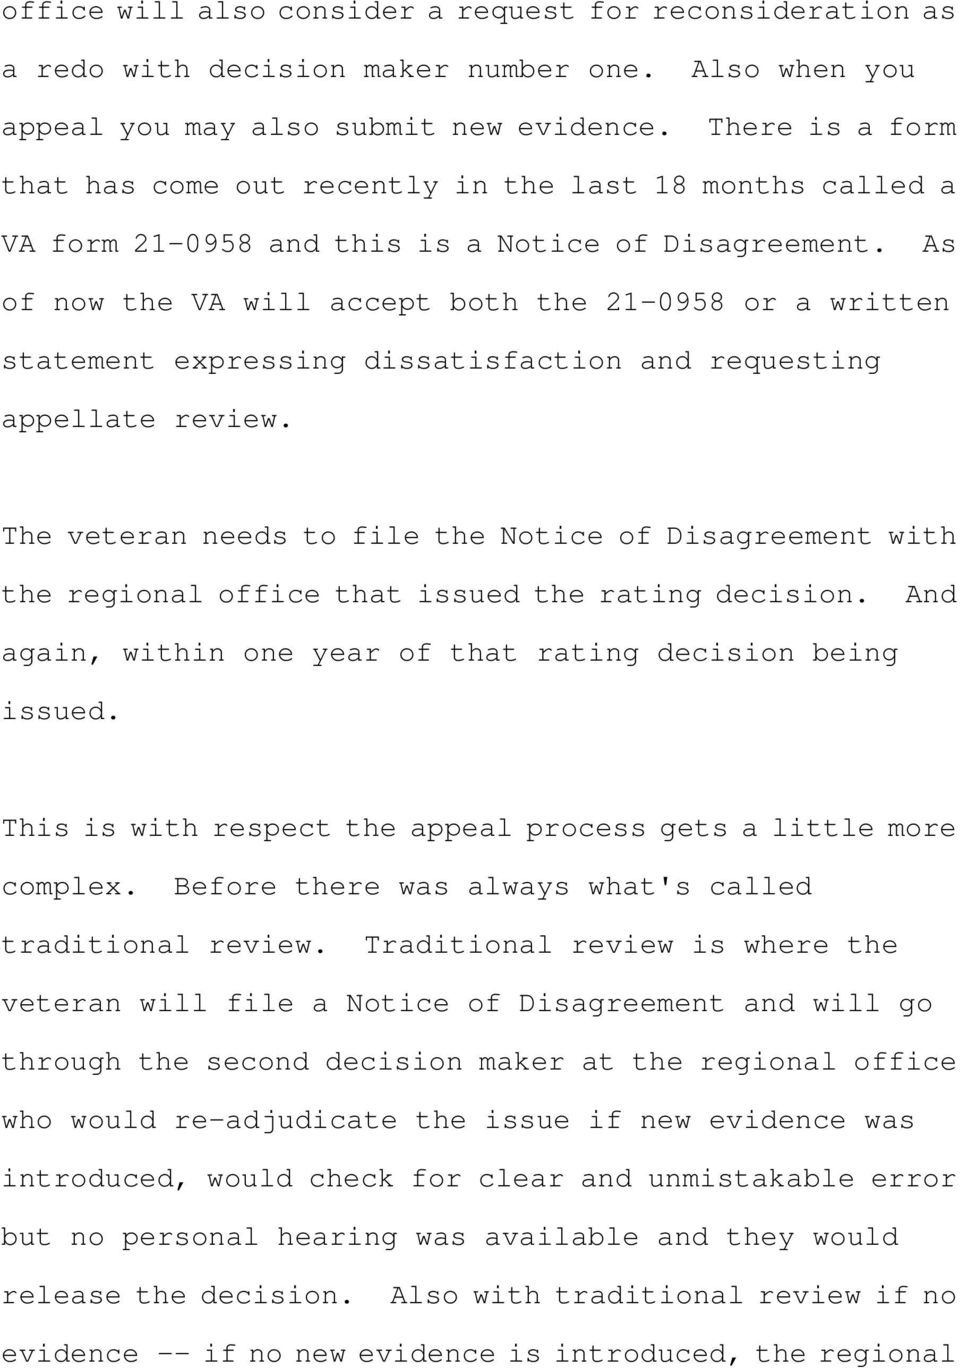 As of now the VA will accept both the 21-0958 or a written statement expressing dissatisfaction and requesting appellate review.